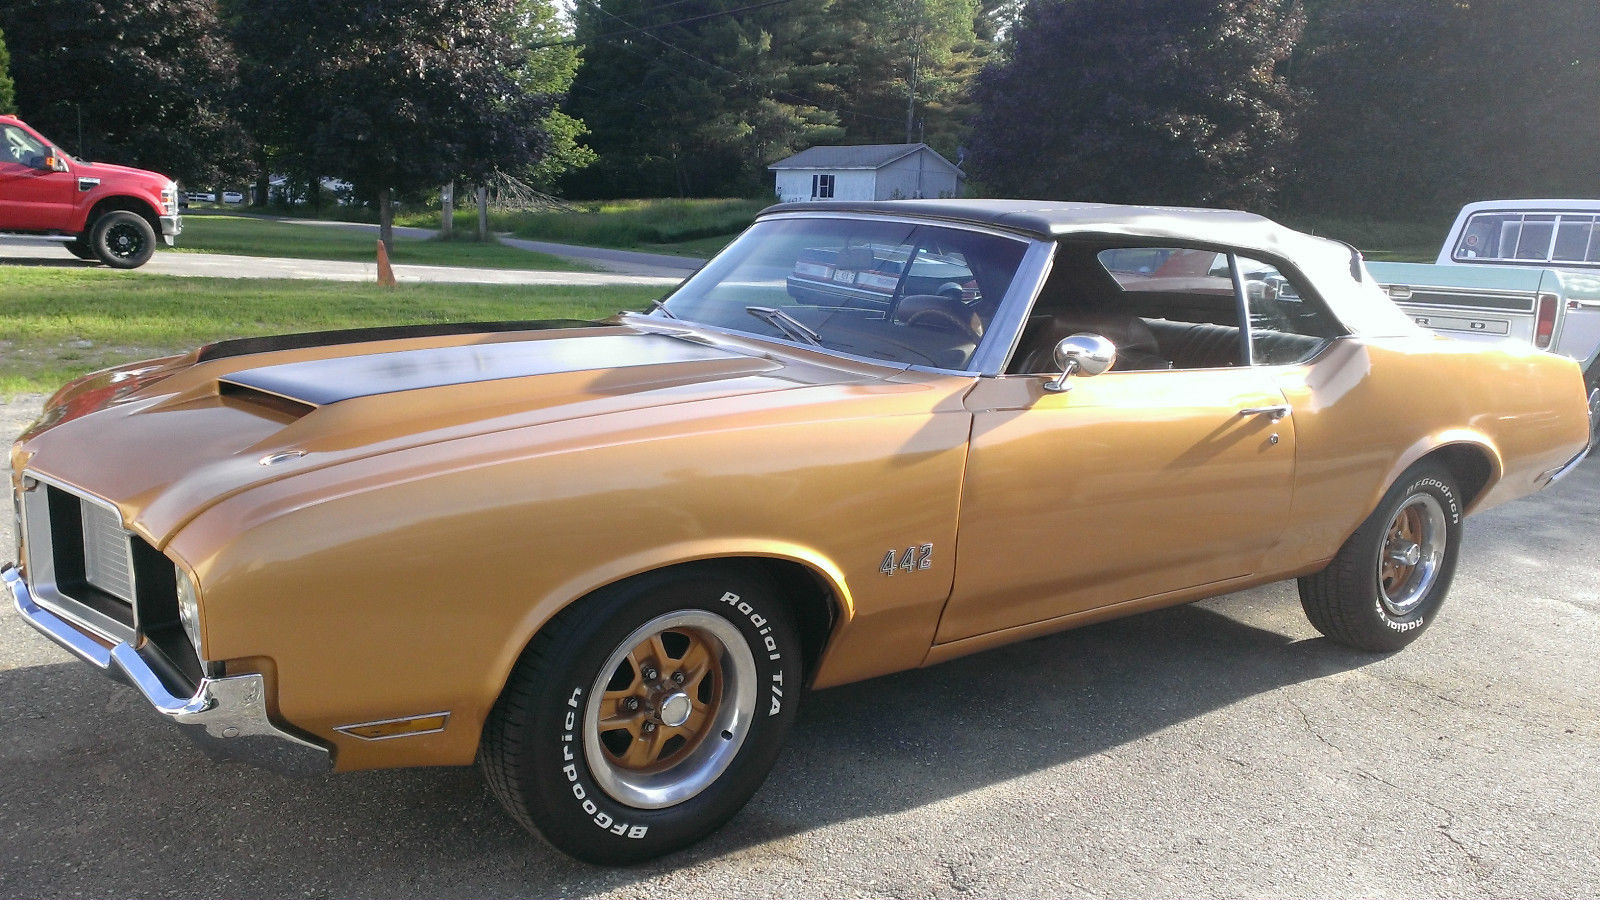 1972 Oldsmobile 442 1?resize\\\=665%2C374 diagrams 8781142 kandi 150 cart wiring diagram crossfire 150r kandi 150cc go kart wiring diagram at gsmx.co